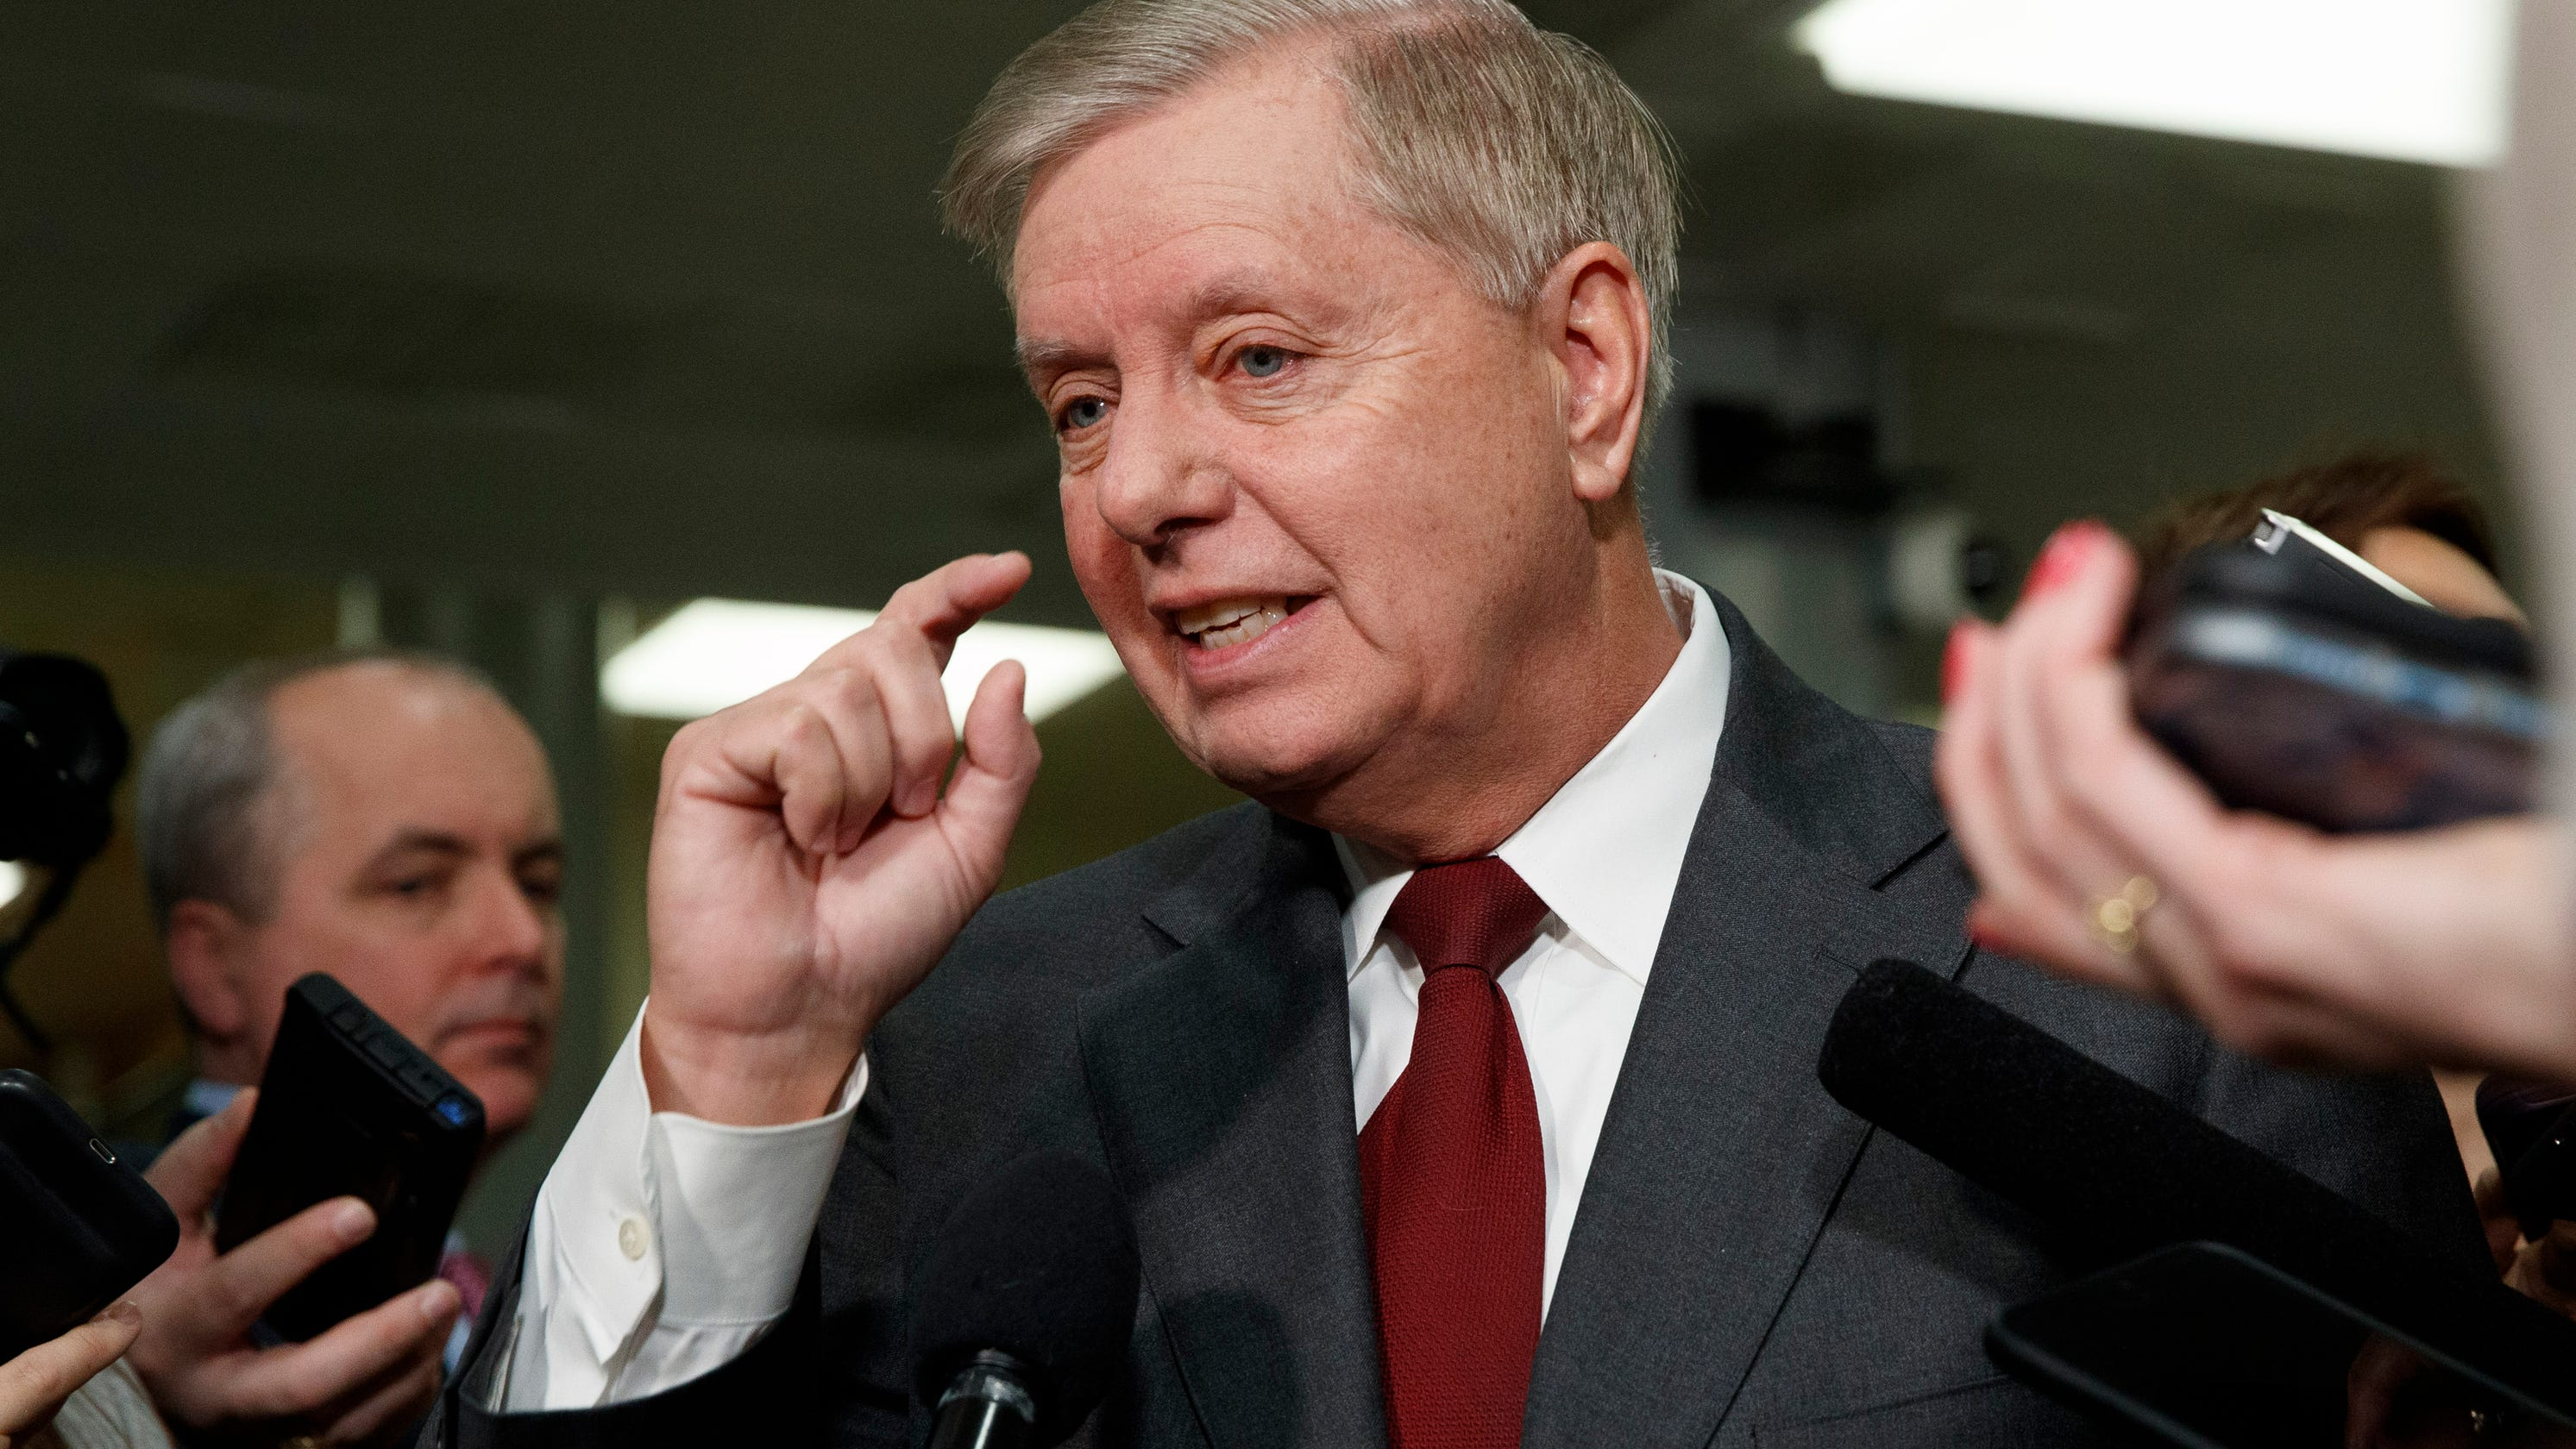 Lindsey Graham says he's spoken with multiple battleground state officials about ballot counting – USA TODAY